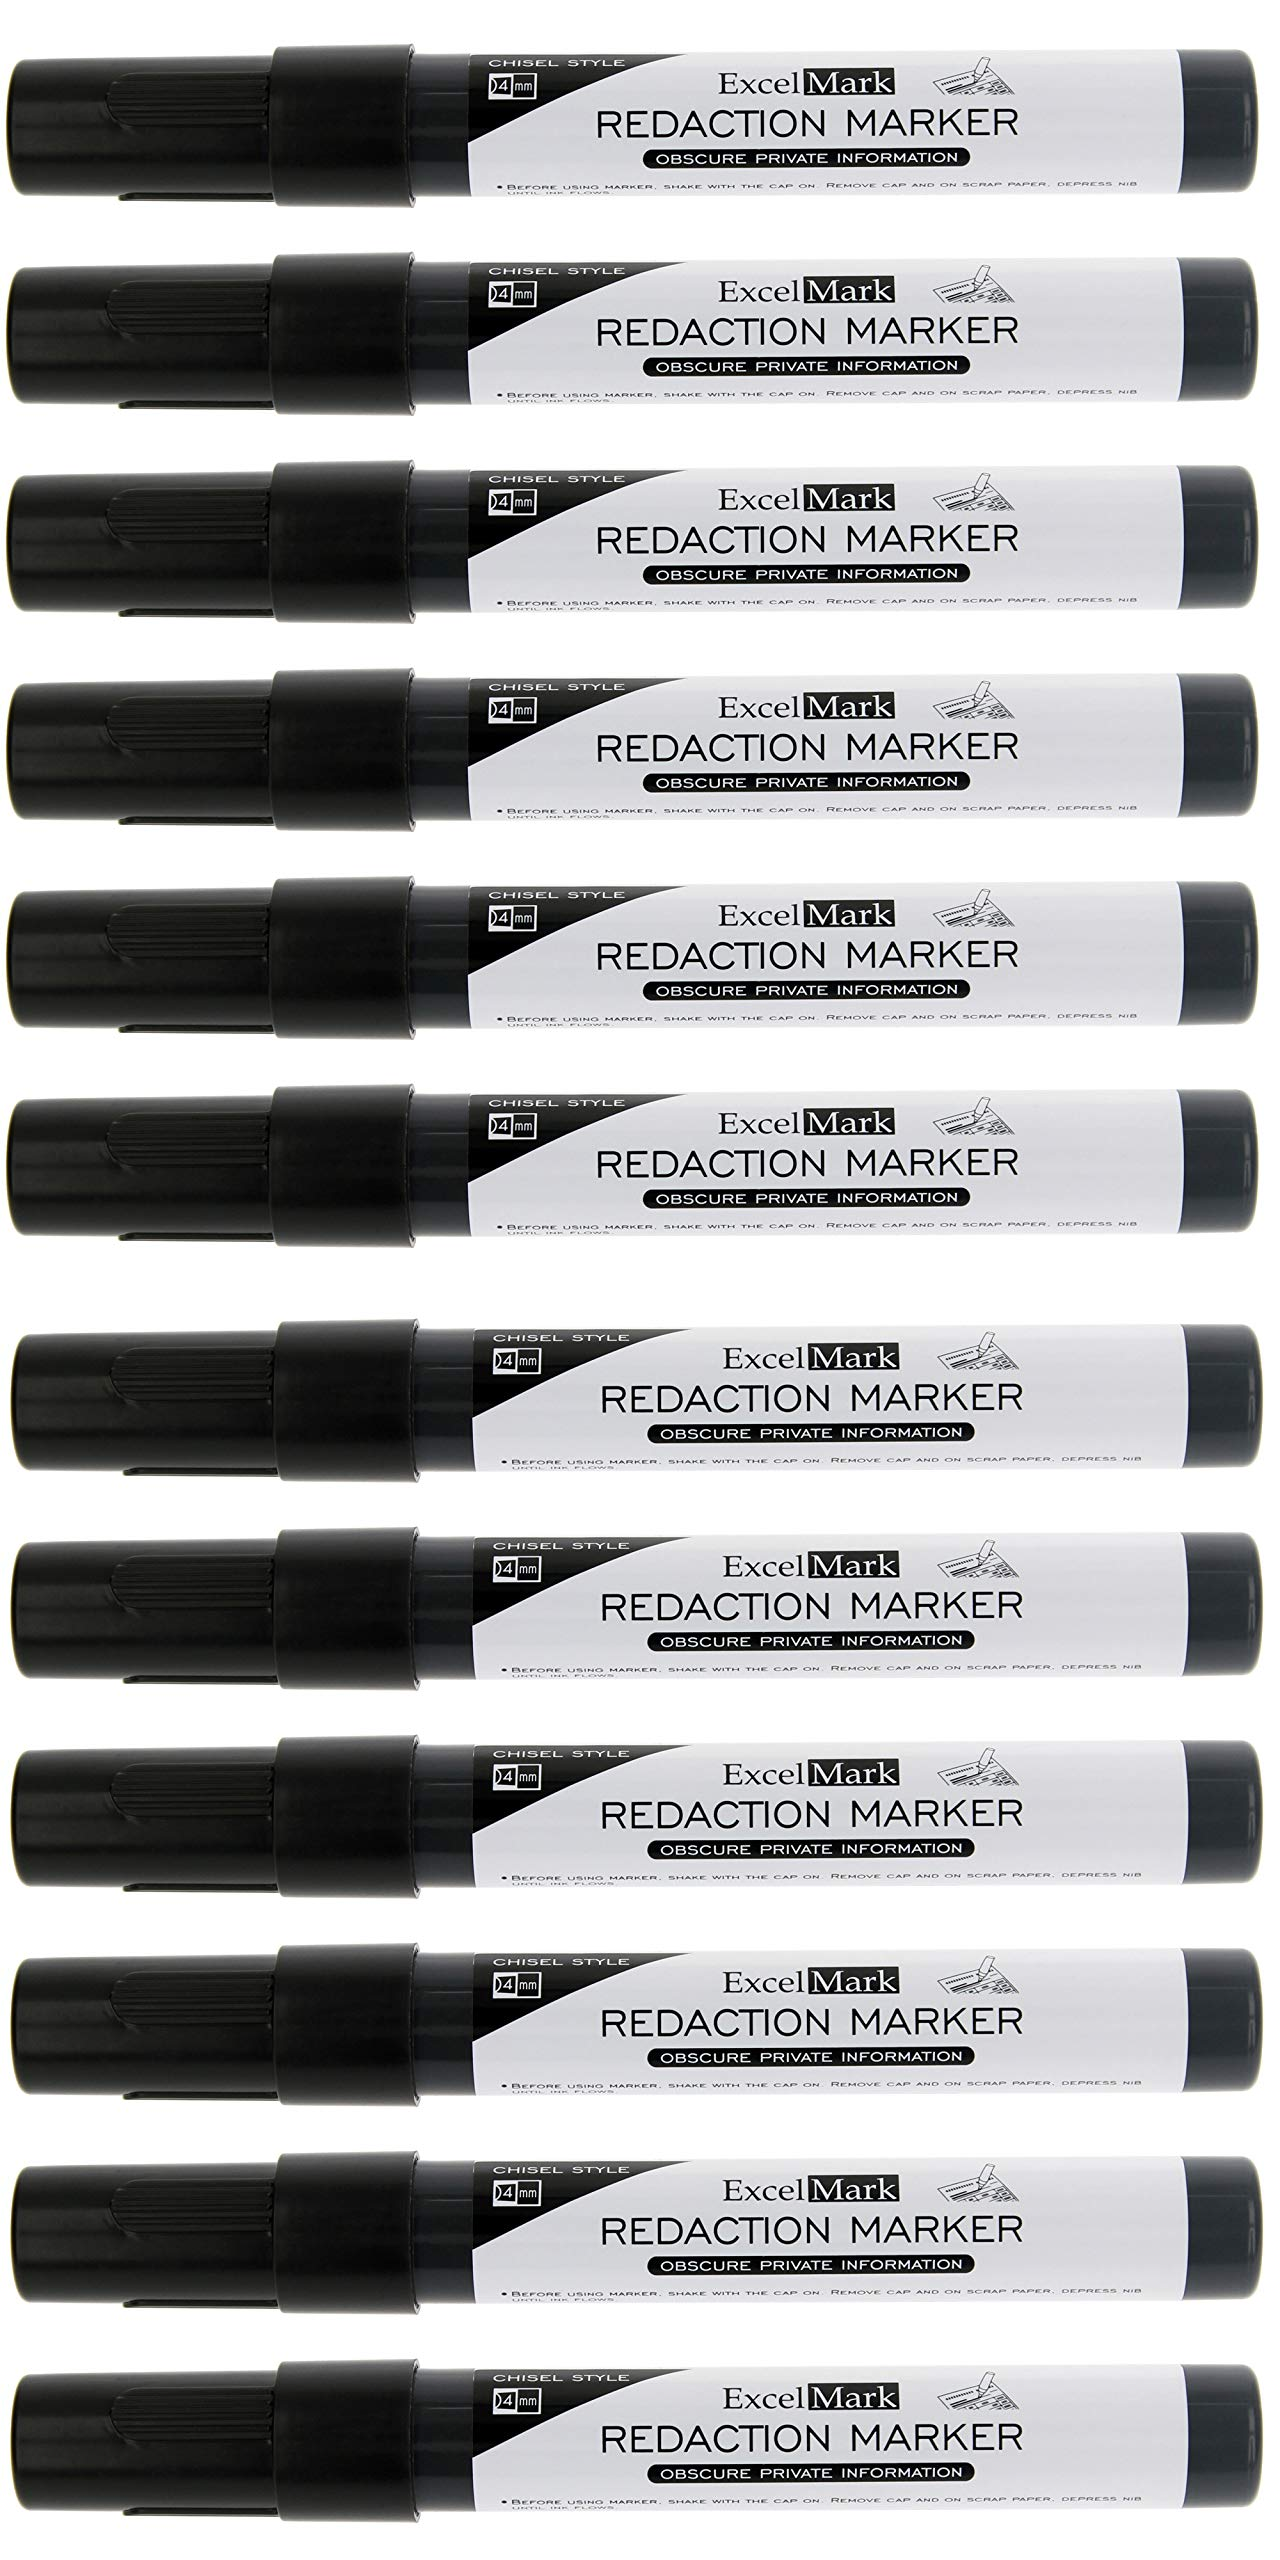 ExcelMark Security Redaction Marker - Blackout Private Information With Our Convenient Redacting Pen (12 Markers) by ExcelMark